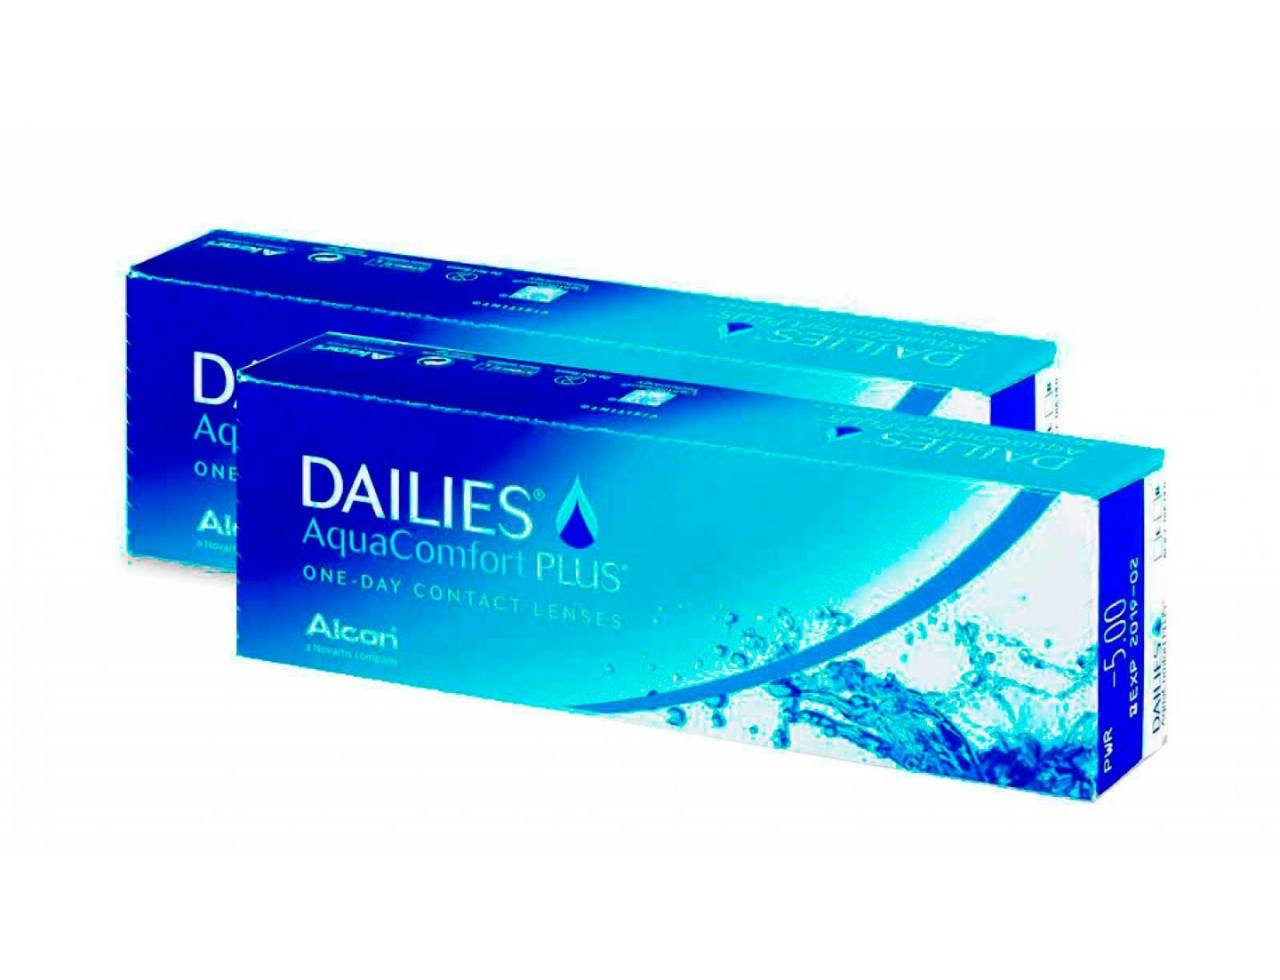 Dailies AquaComfort Plus - 2 уп. по 30 линз (-3%)